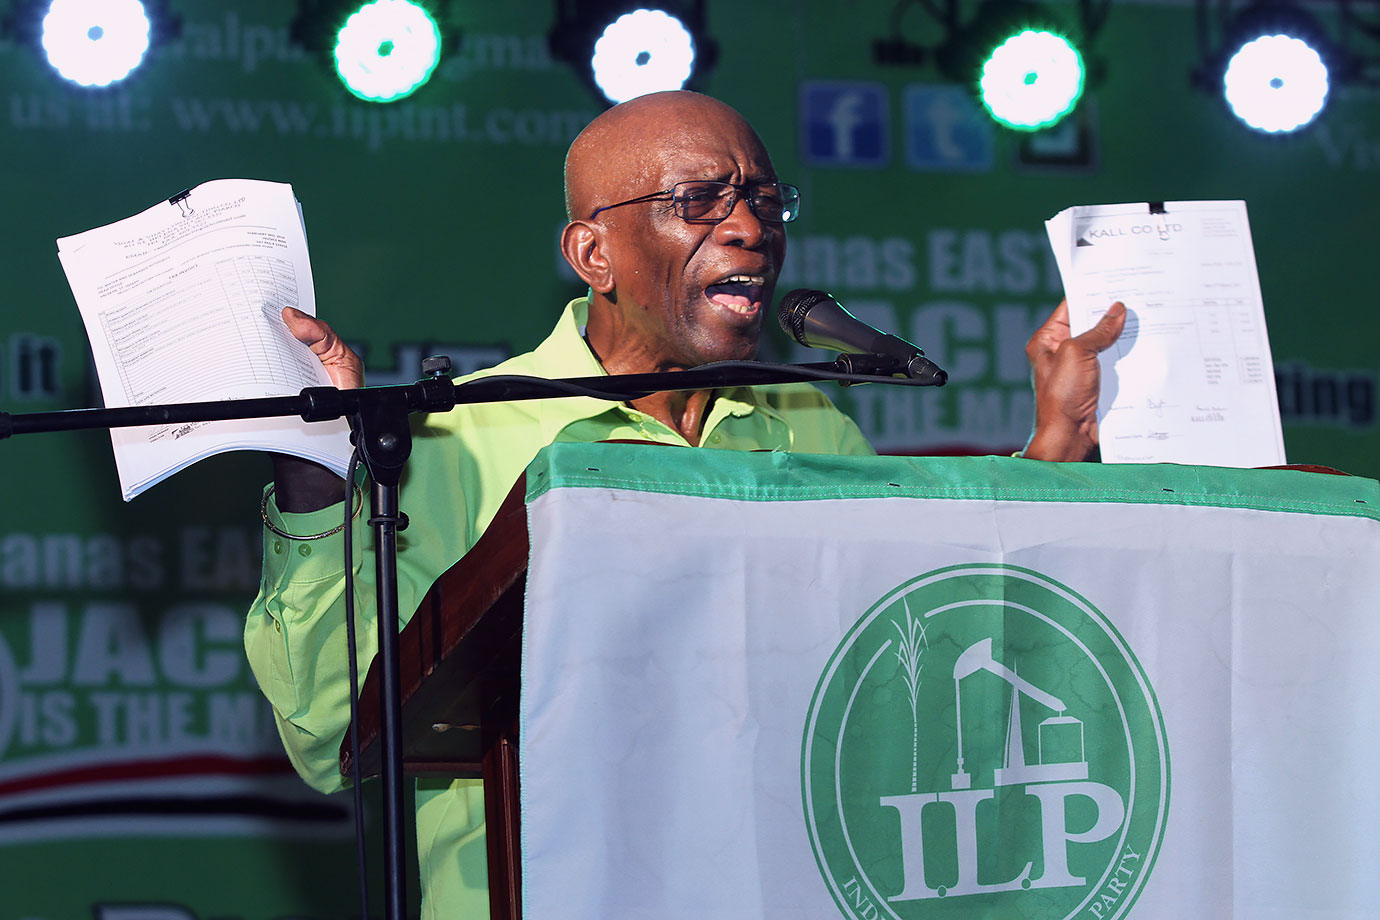 Even next to all the fools in FIFA, Jack Warner looks especially ridiculous. Not for taking millions in bribes, but for trying to cite The Onion in his defense.